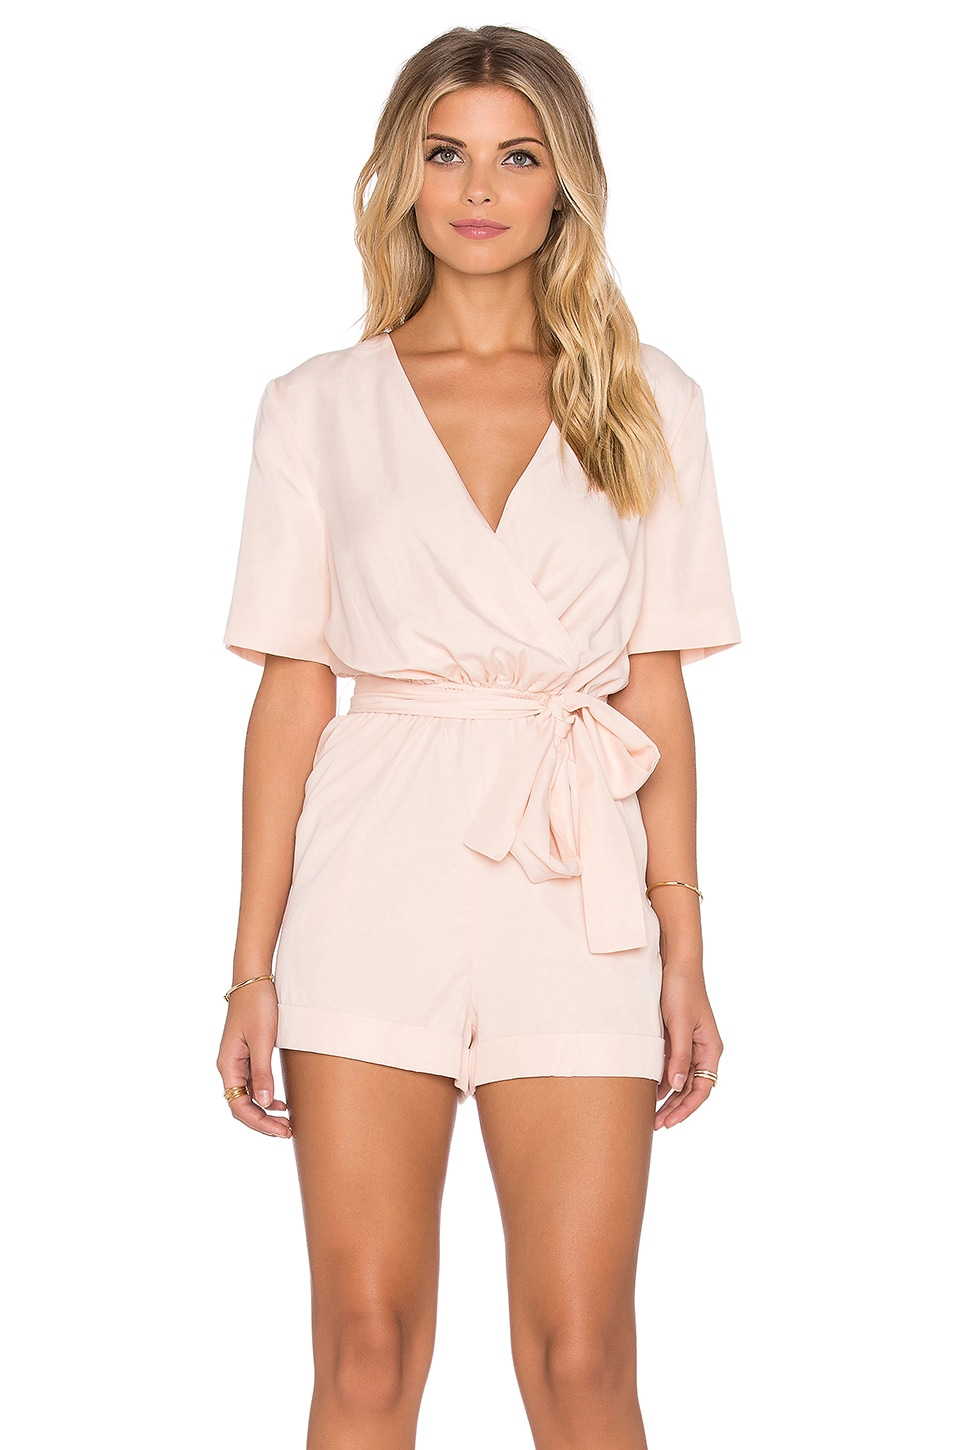 Finders Keepers The Rewind Playsuit in Shell